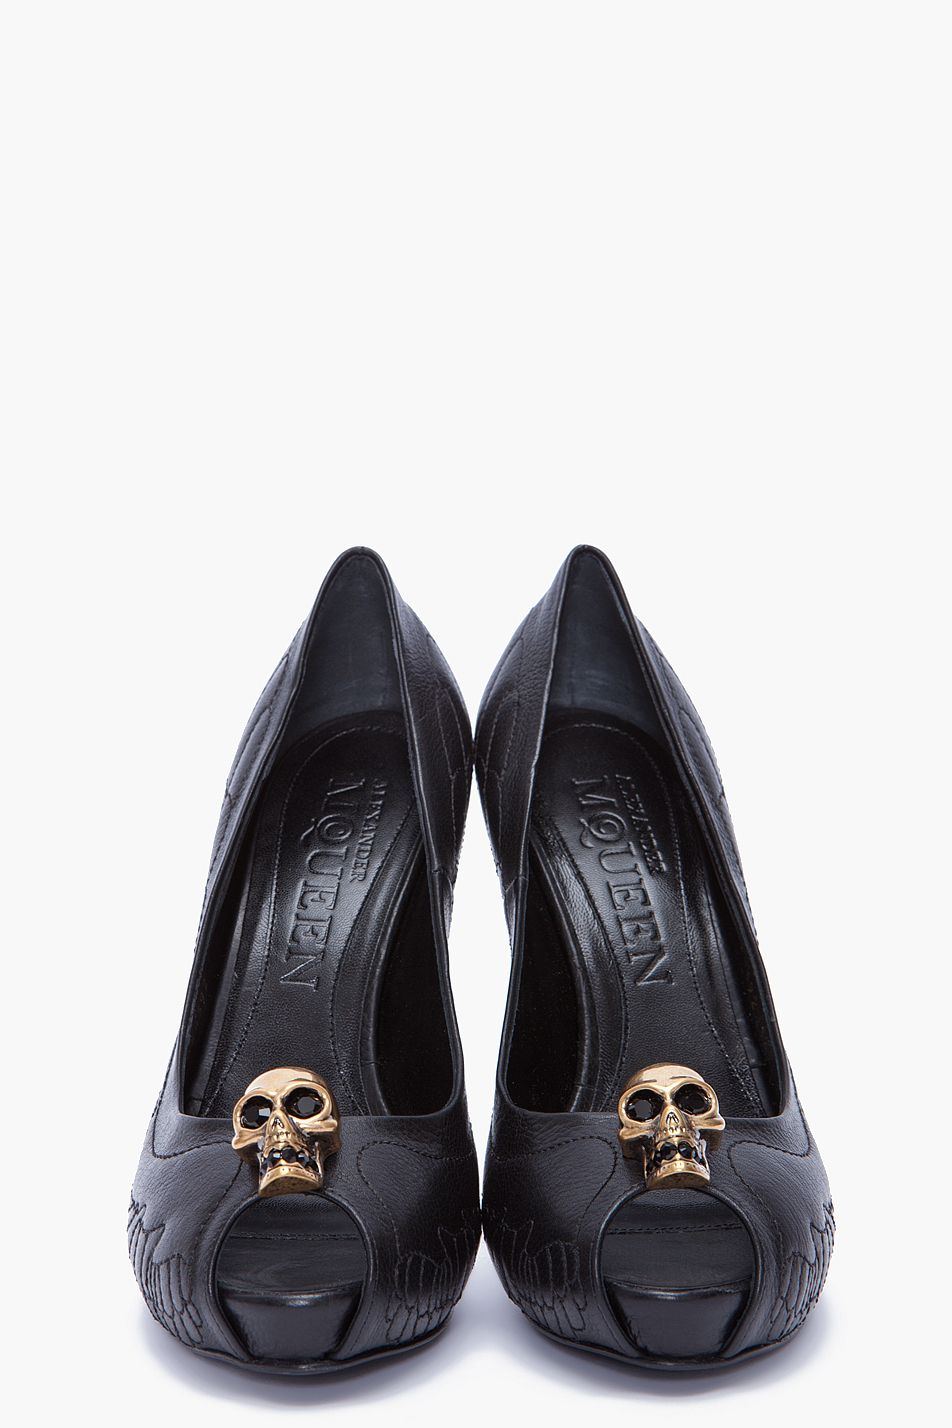 Alexander Mcqueen court designer dead skull skeleton black shoes heels stiletto x